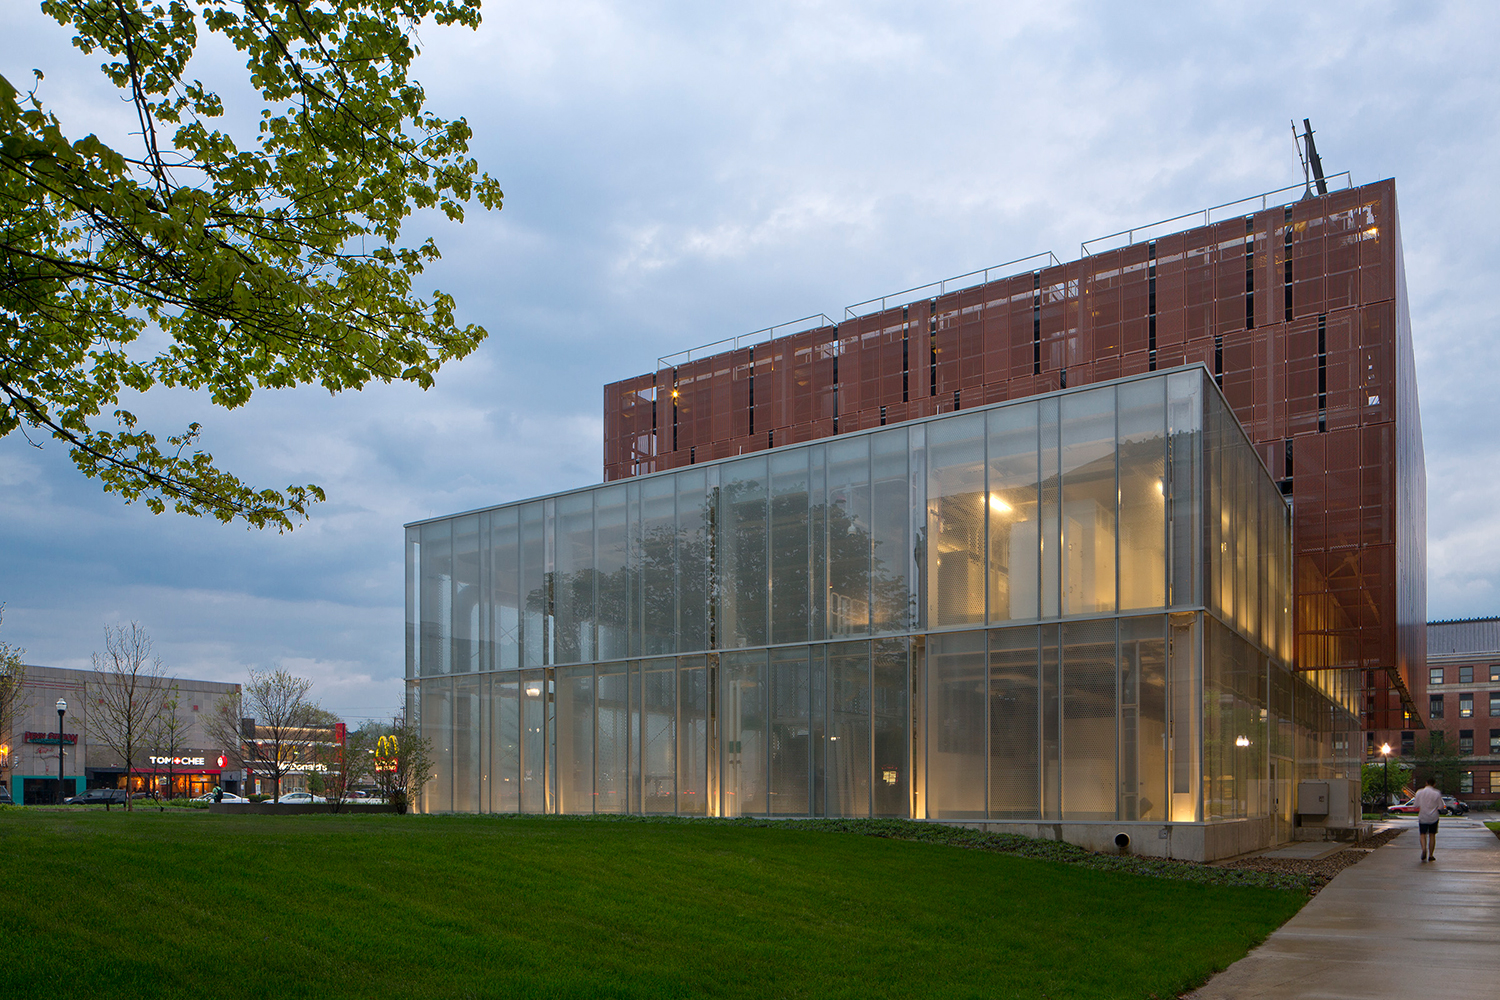 The Ohio State University East Regional Chilled Water Plant BSA - Ohio state architecture